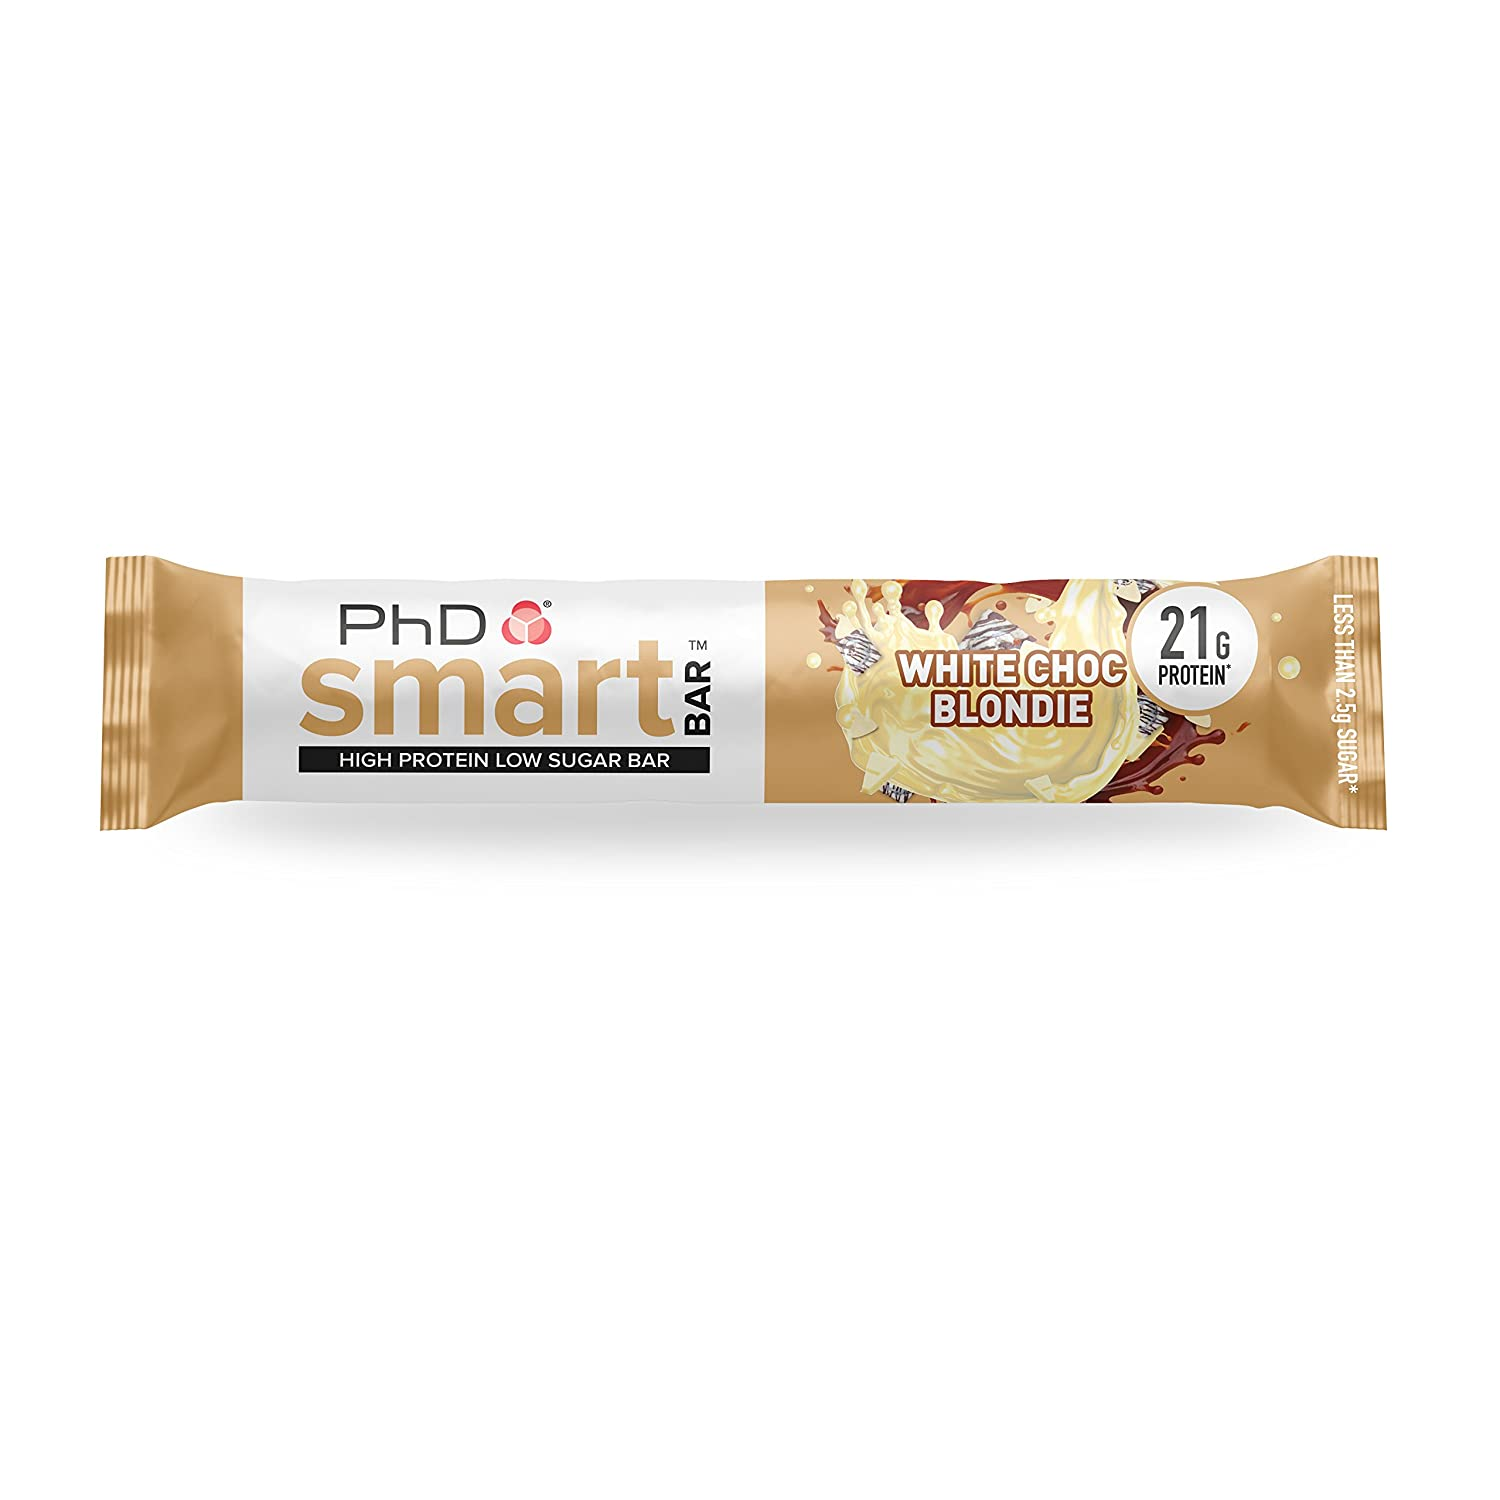 PhD Smart Bar White Chocolate Blondie - 12 Barras: Amazon.es: Salud y cuidado personal